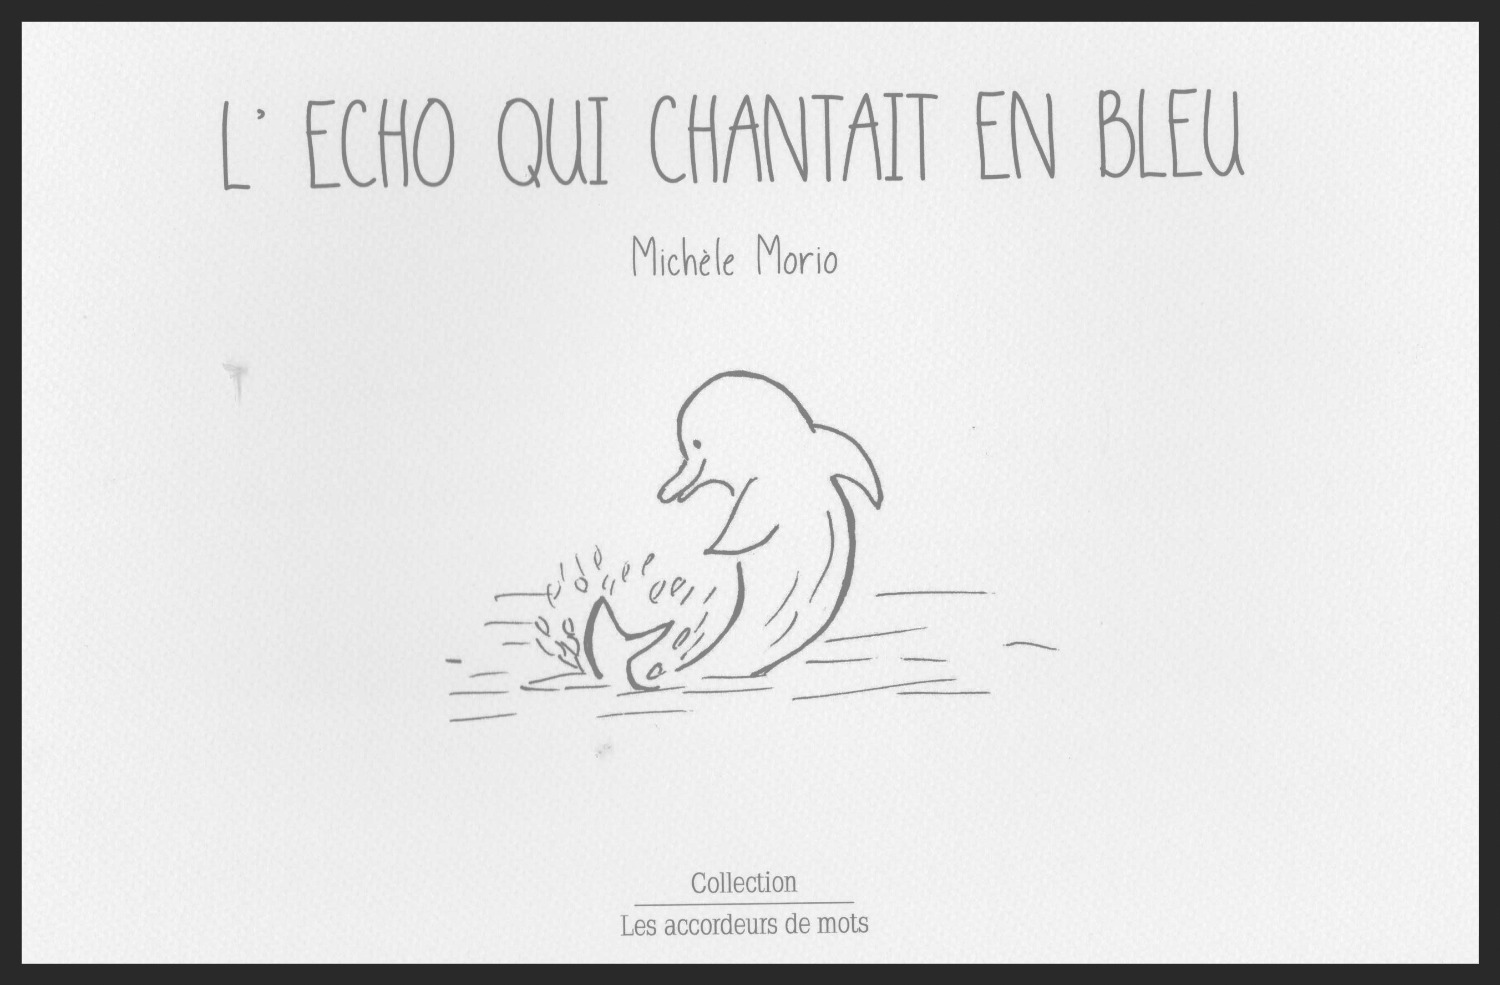 L'écho qui chantait en bleu